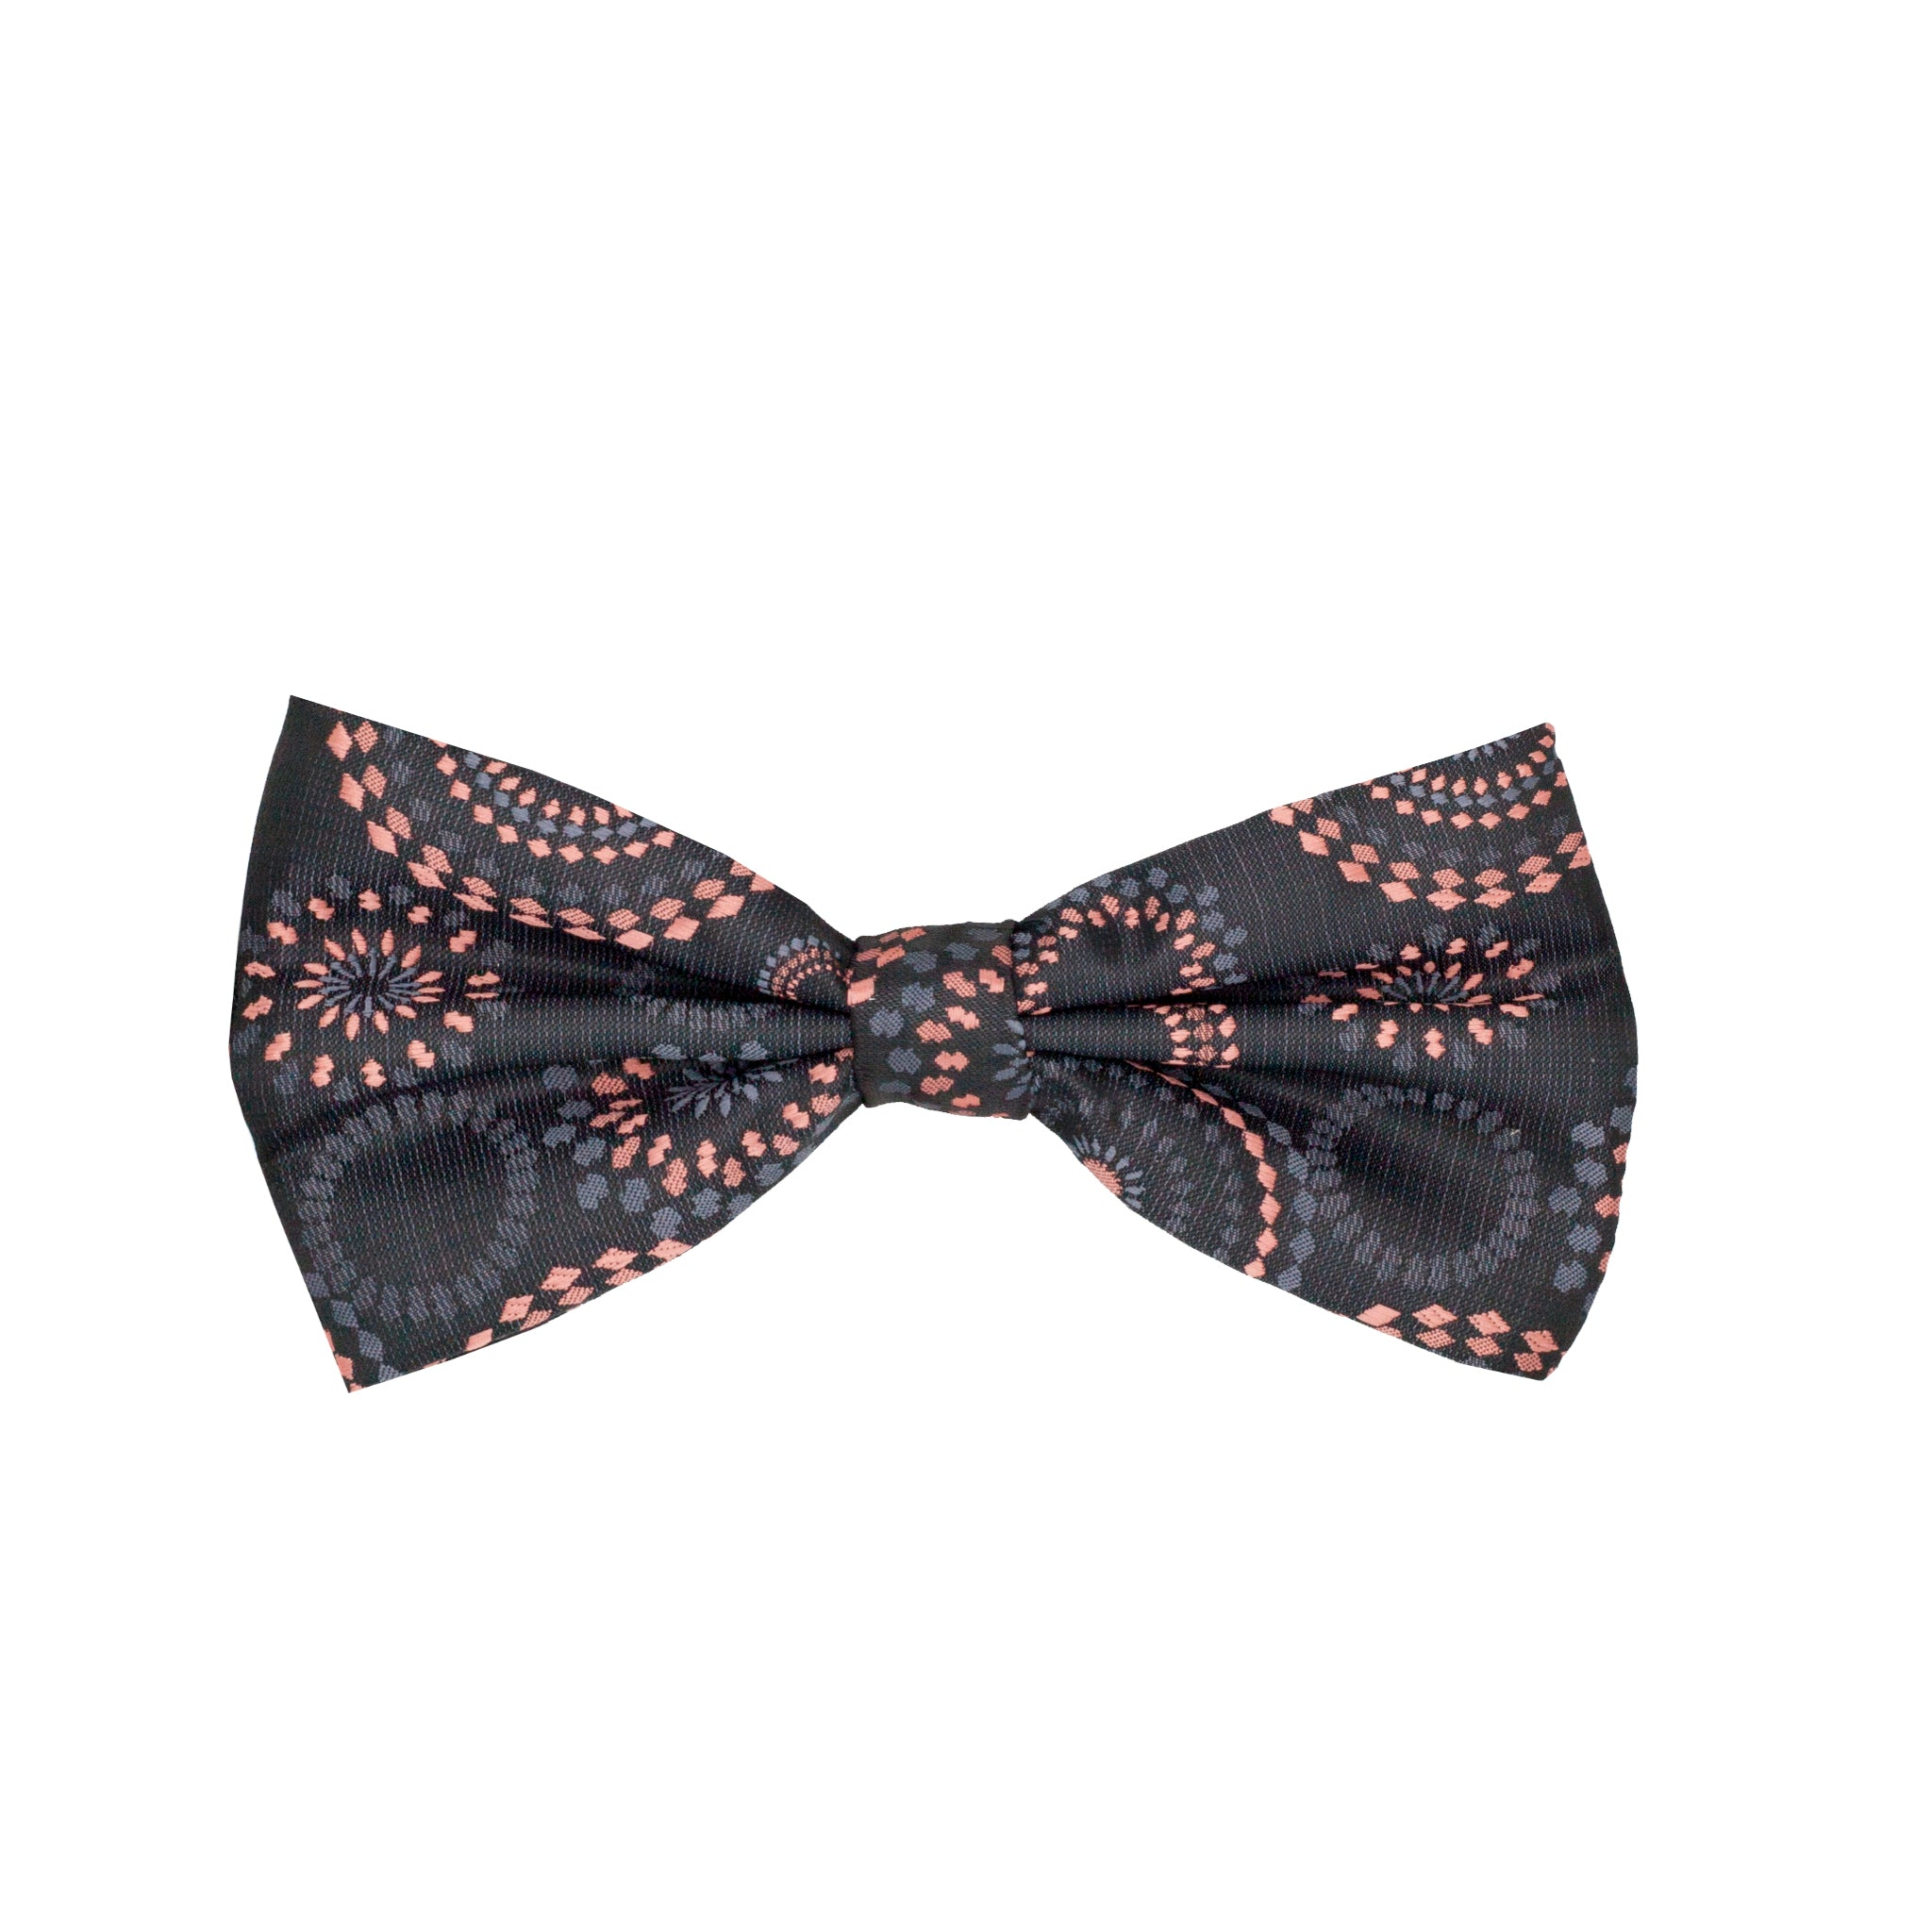 IU BOWTIE SET BLACK / TAN